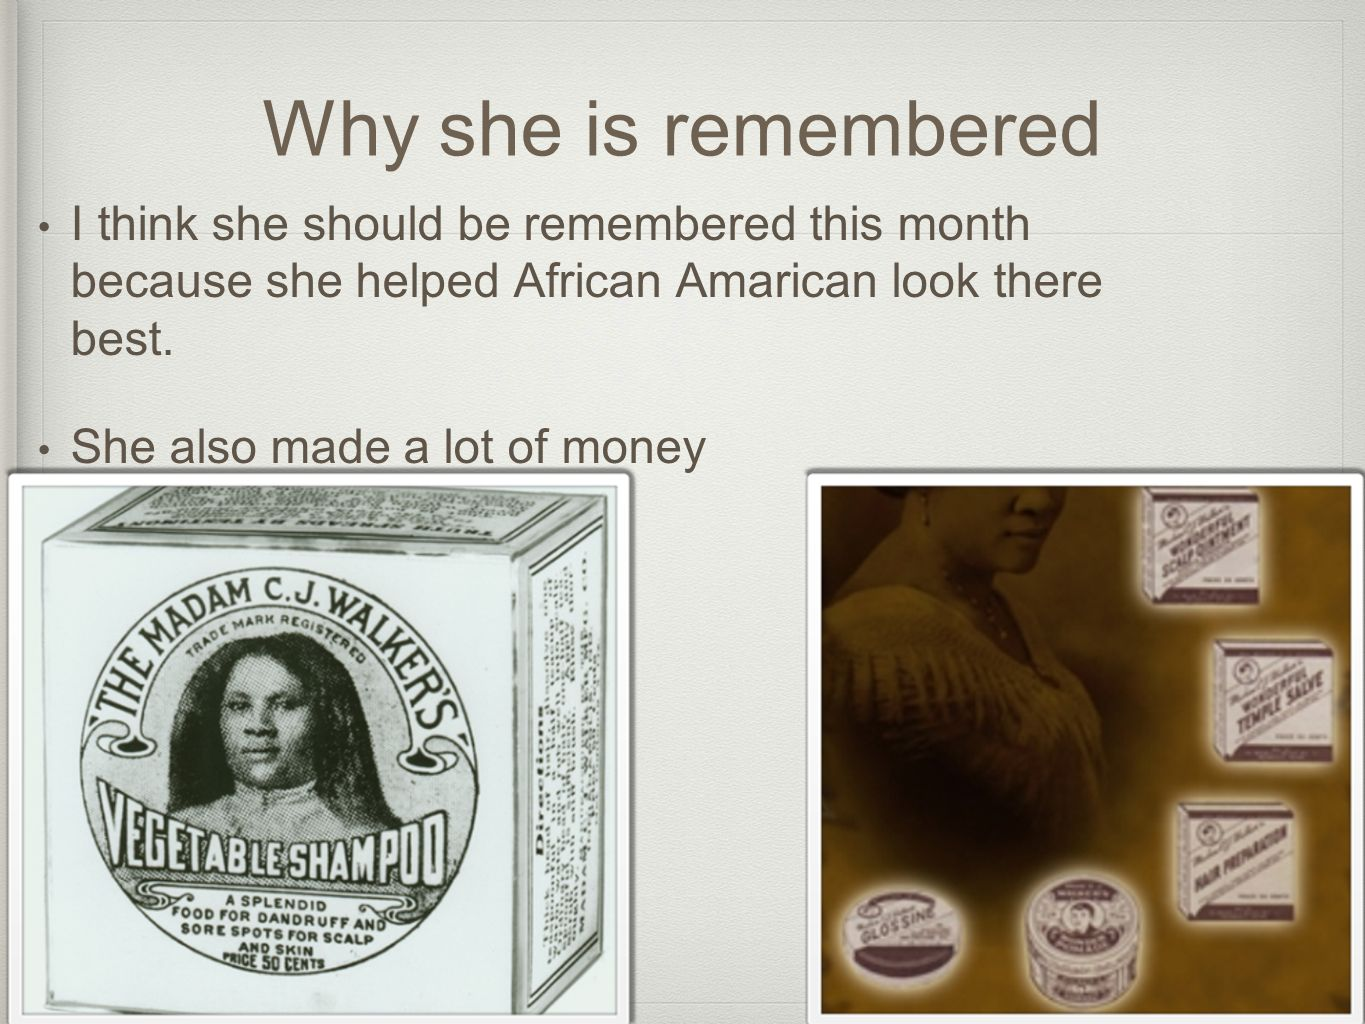 Why she is remembered I think she should be remembered this month because she helped African Amarican look there best.